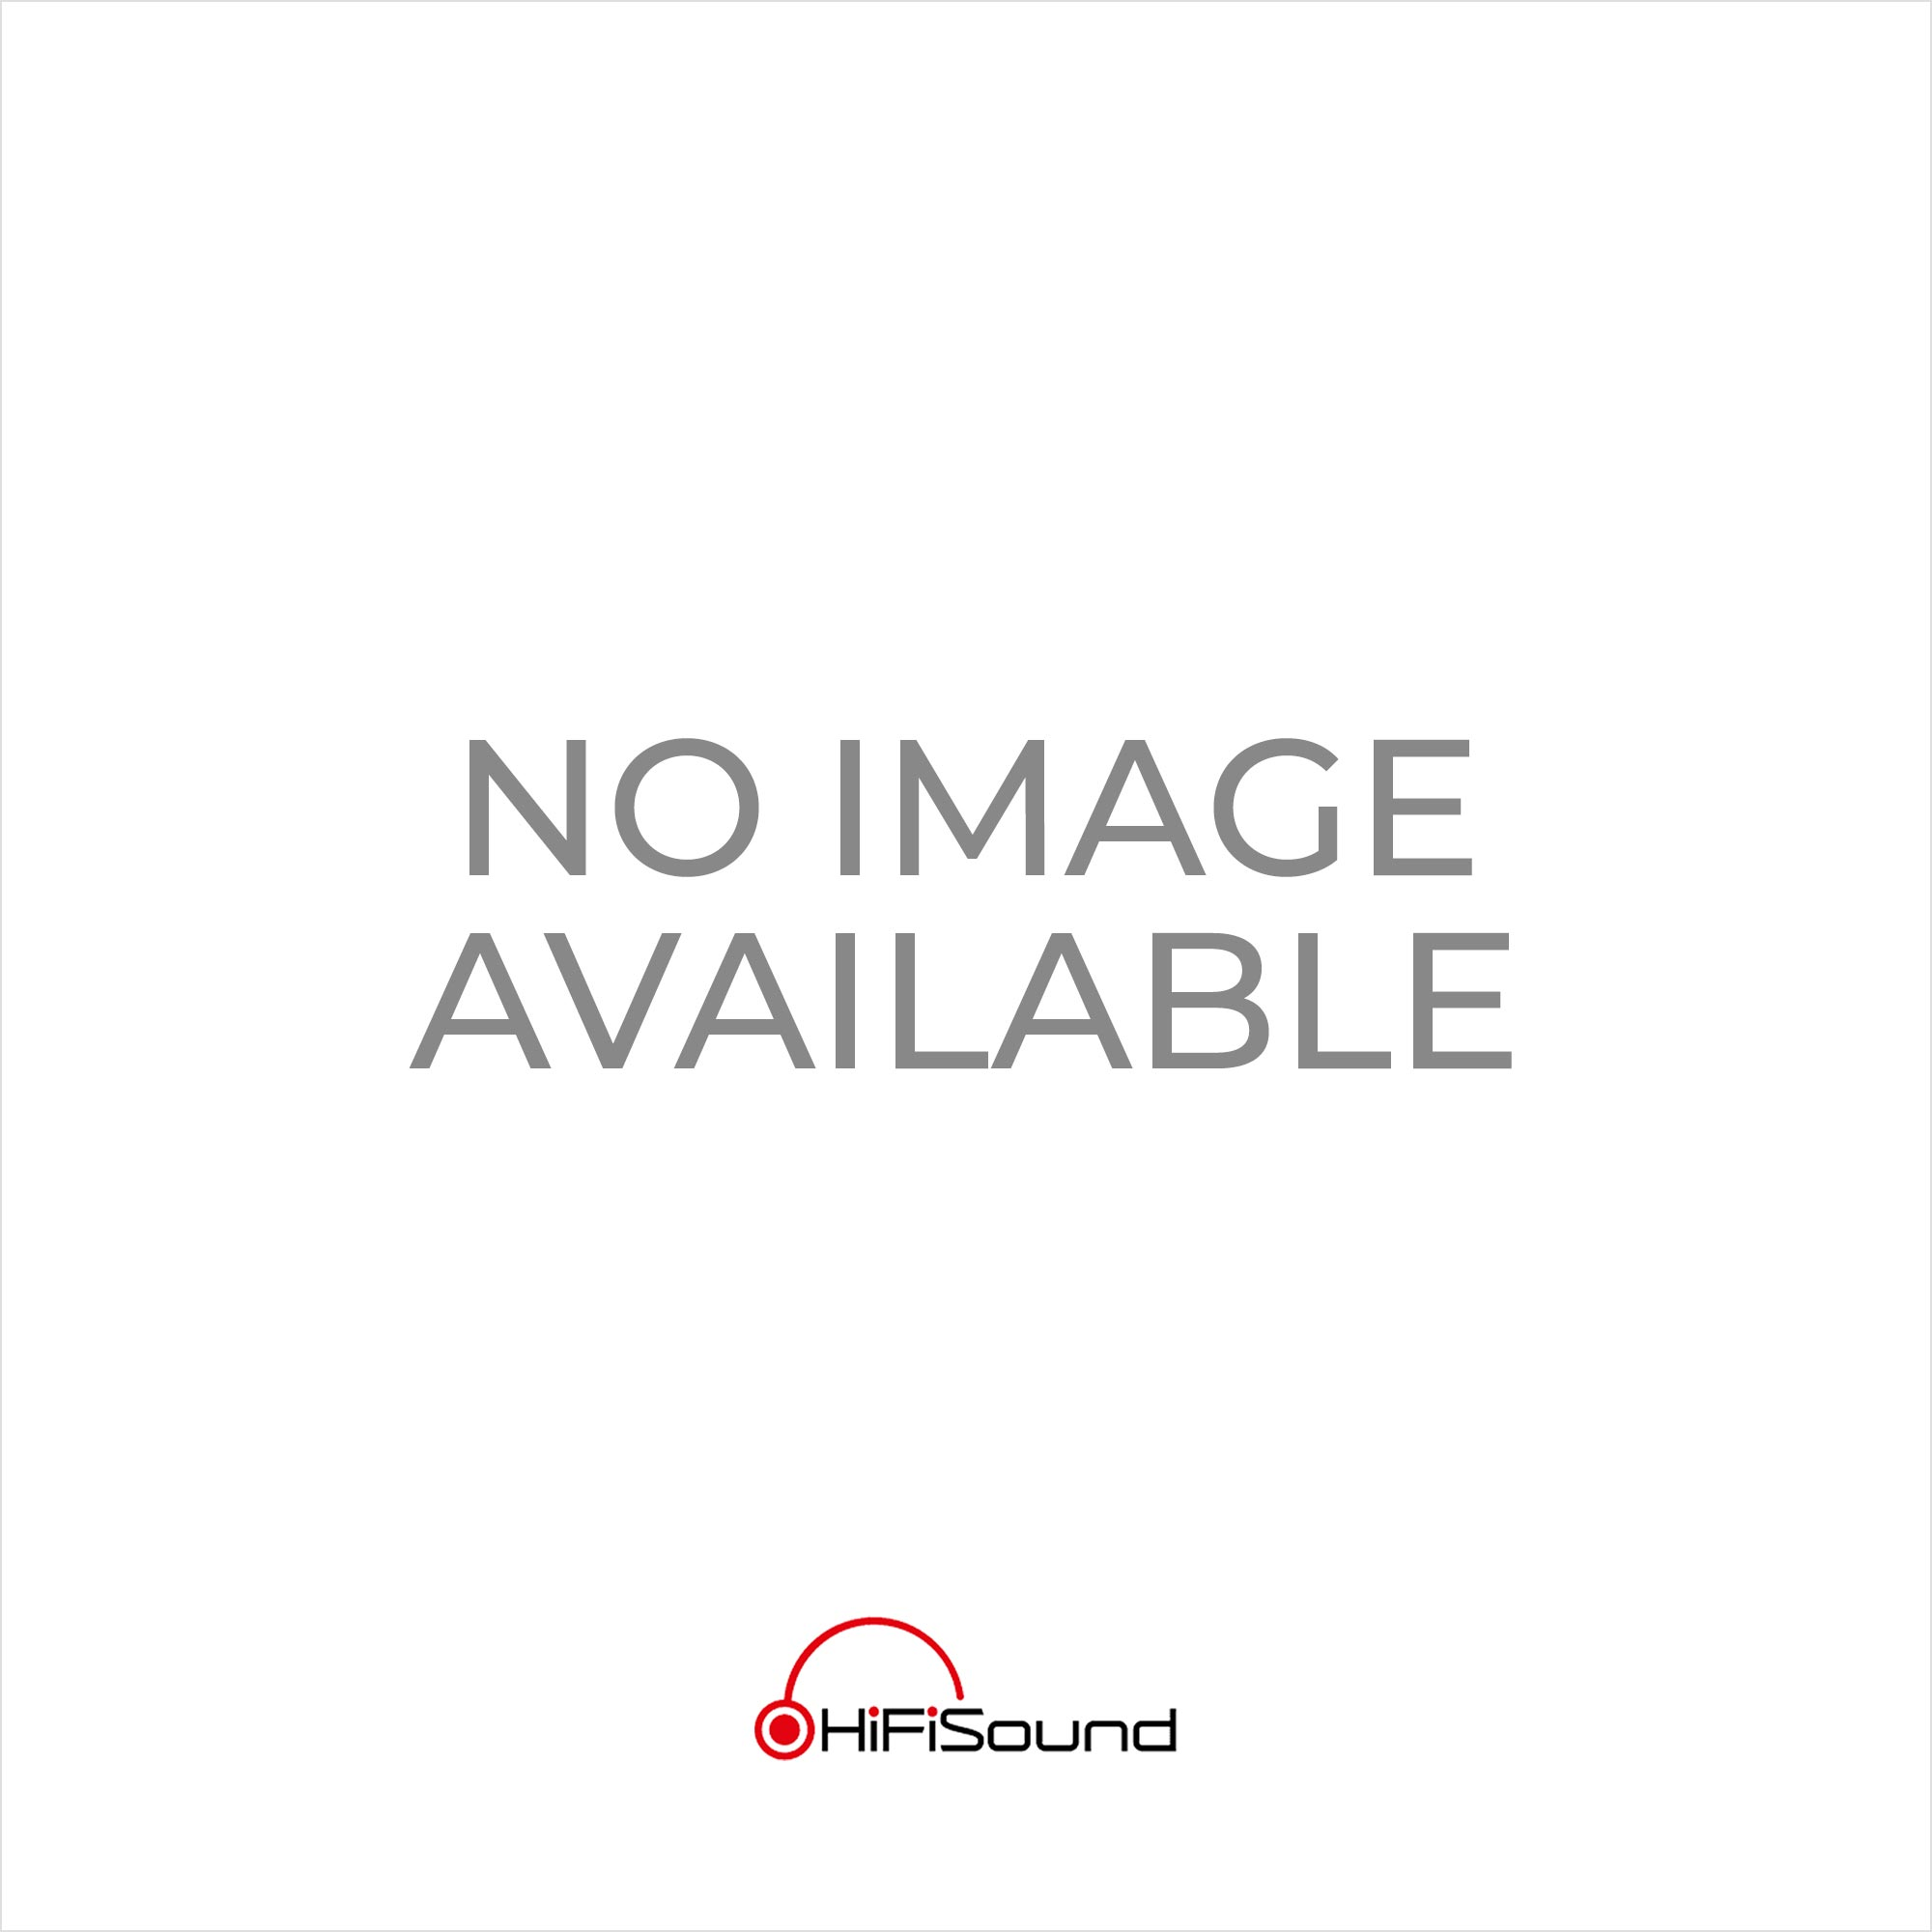 Novafidelity X50D Pure Digital Music Streamer